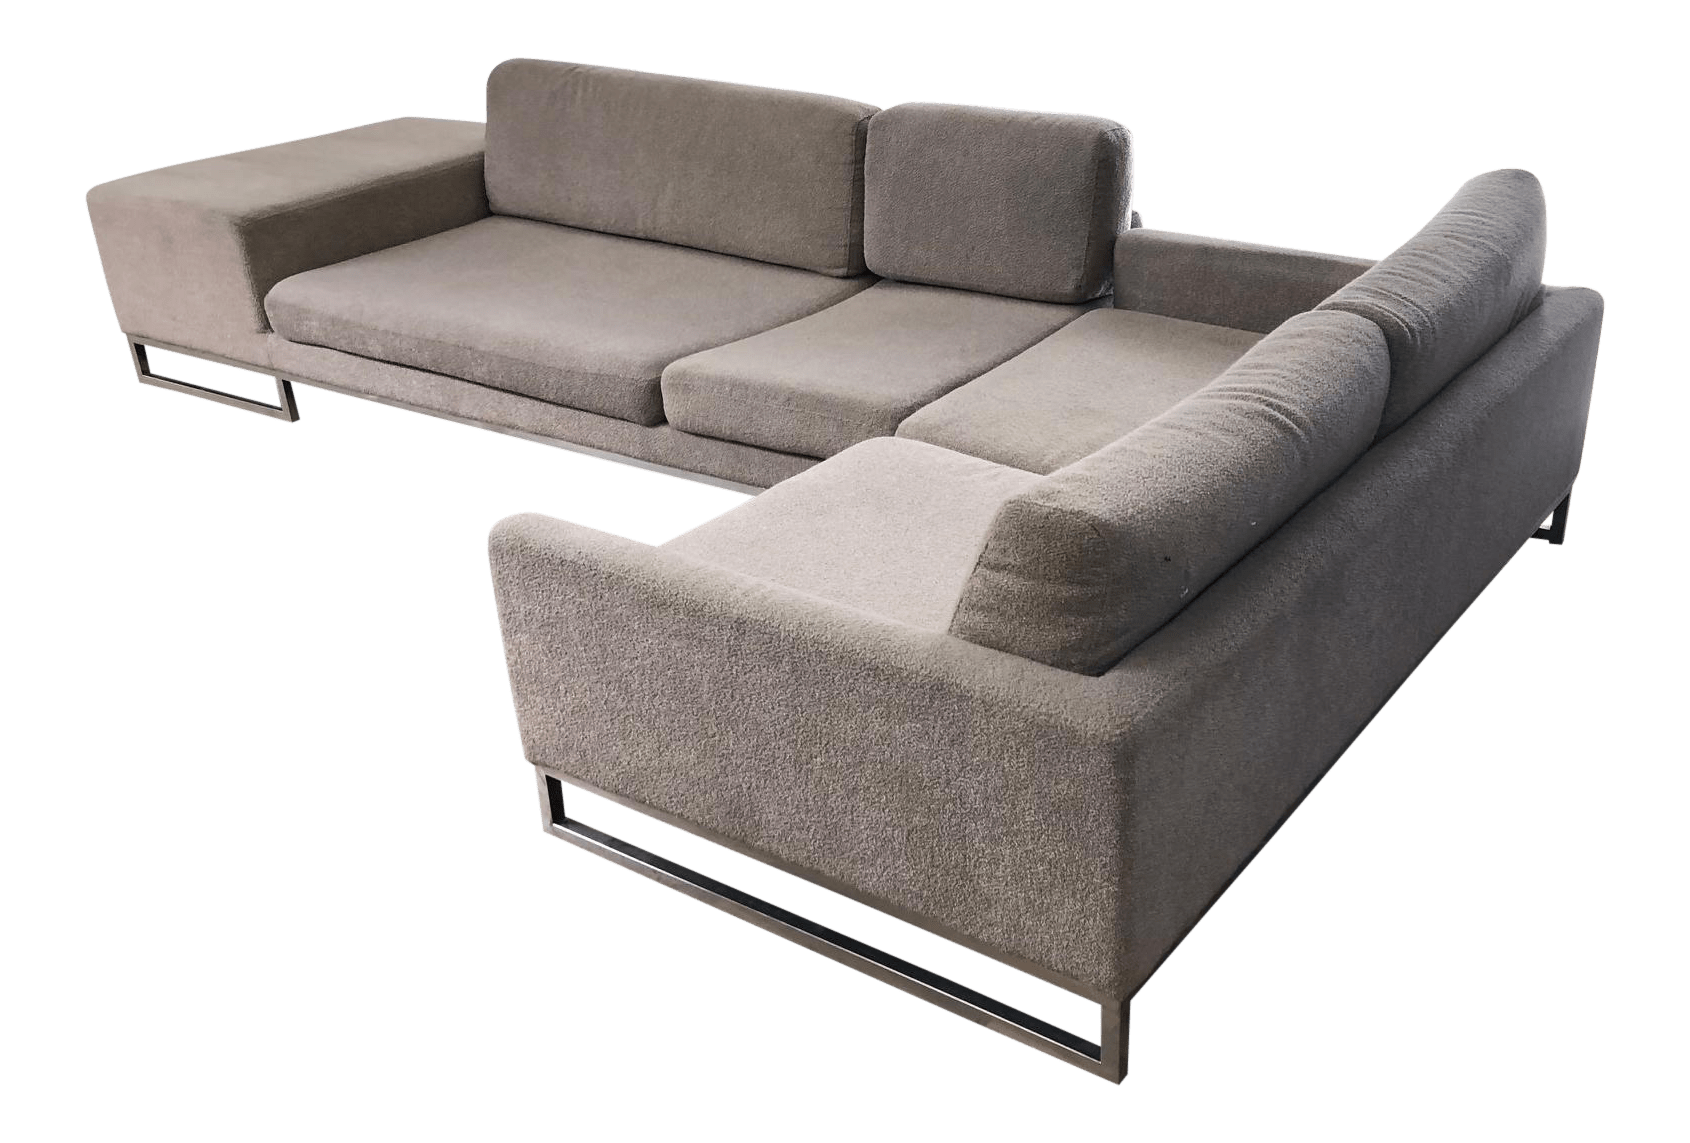 Modern Couch Ligne Roset Styled Sectional Modern Sofa With Chrome Base